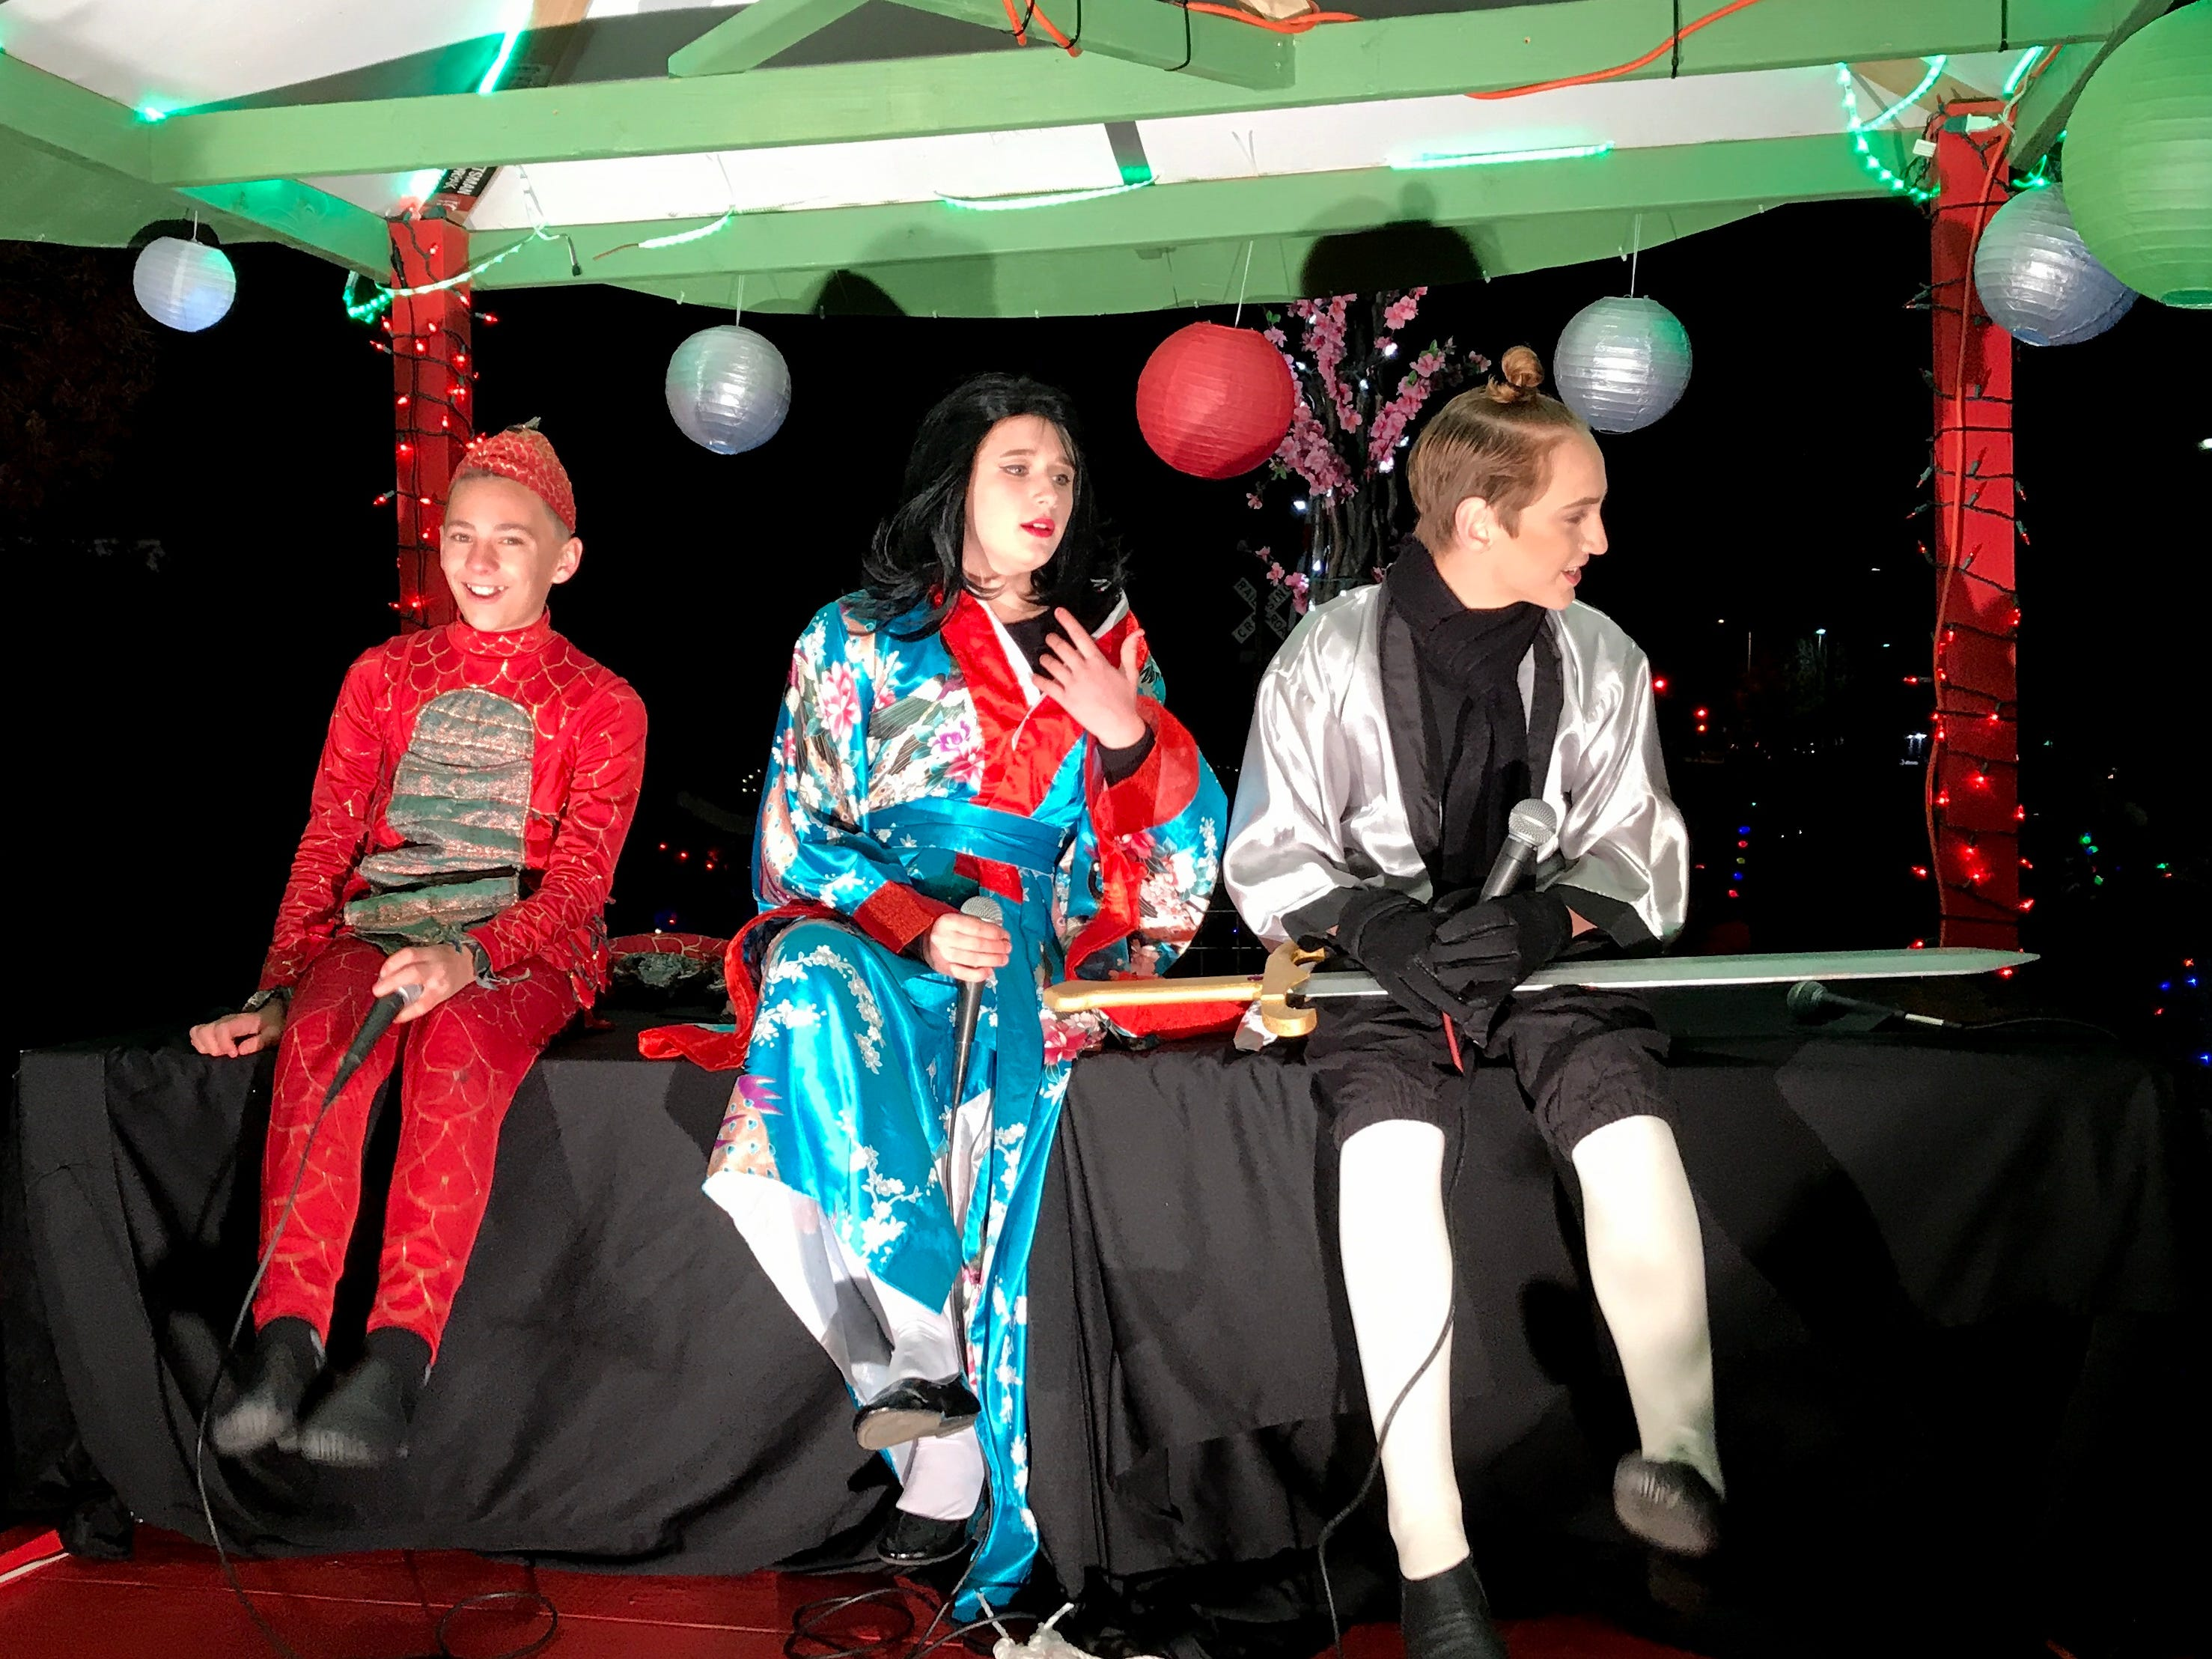 Mulan characters Noah Roberts, from left, Taylor Harper and Hayden Kay sit in the Redding School of the Arts float Saturday for the Lighted Christmas Parade.